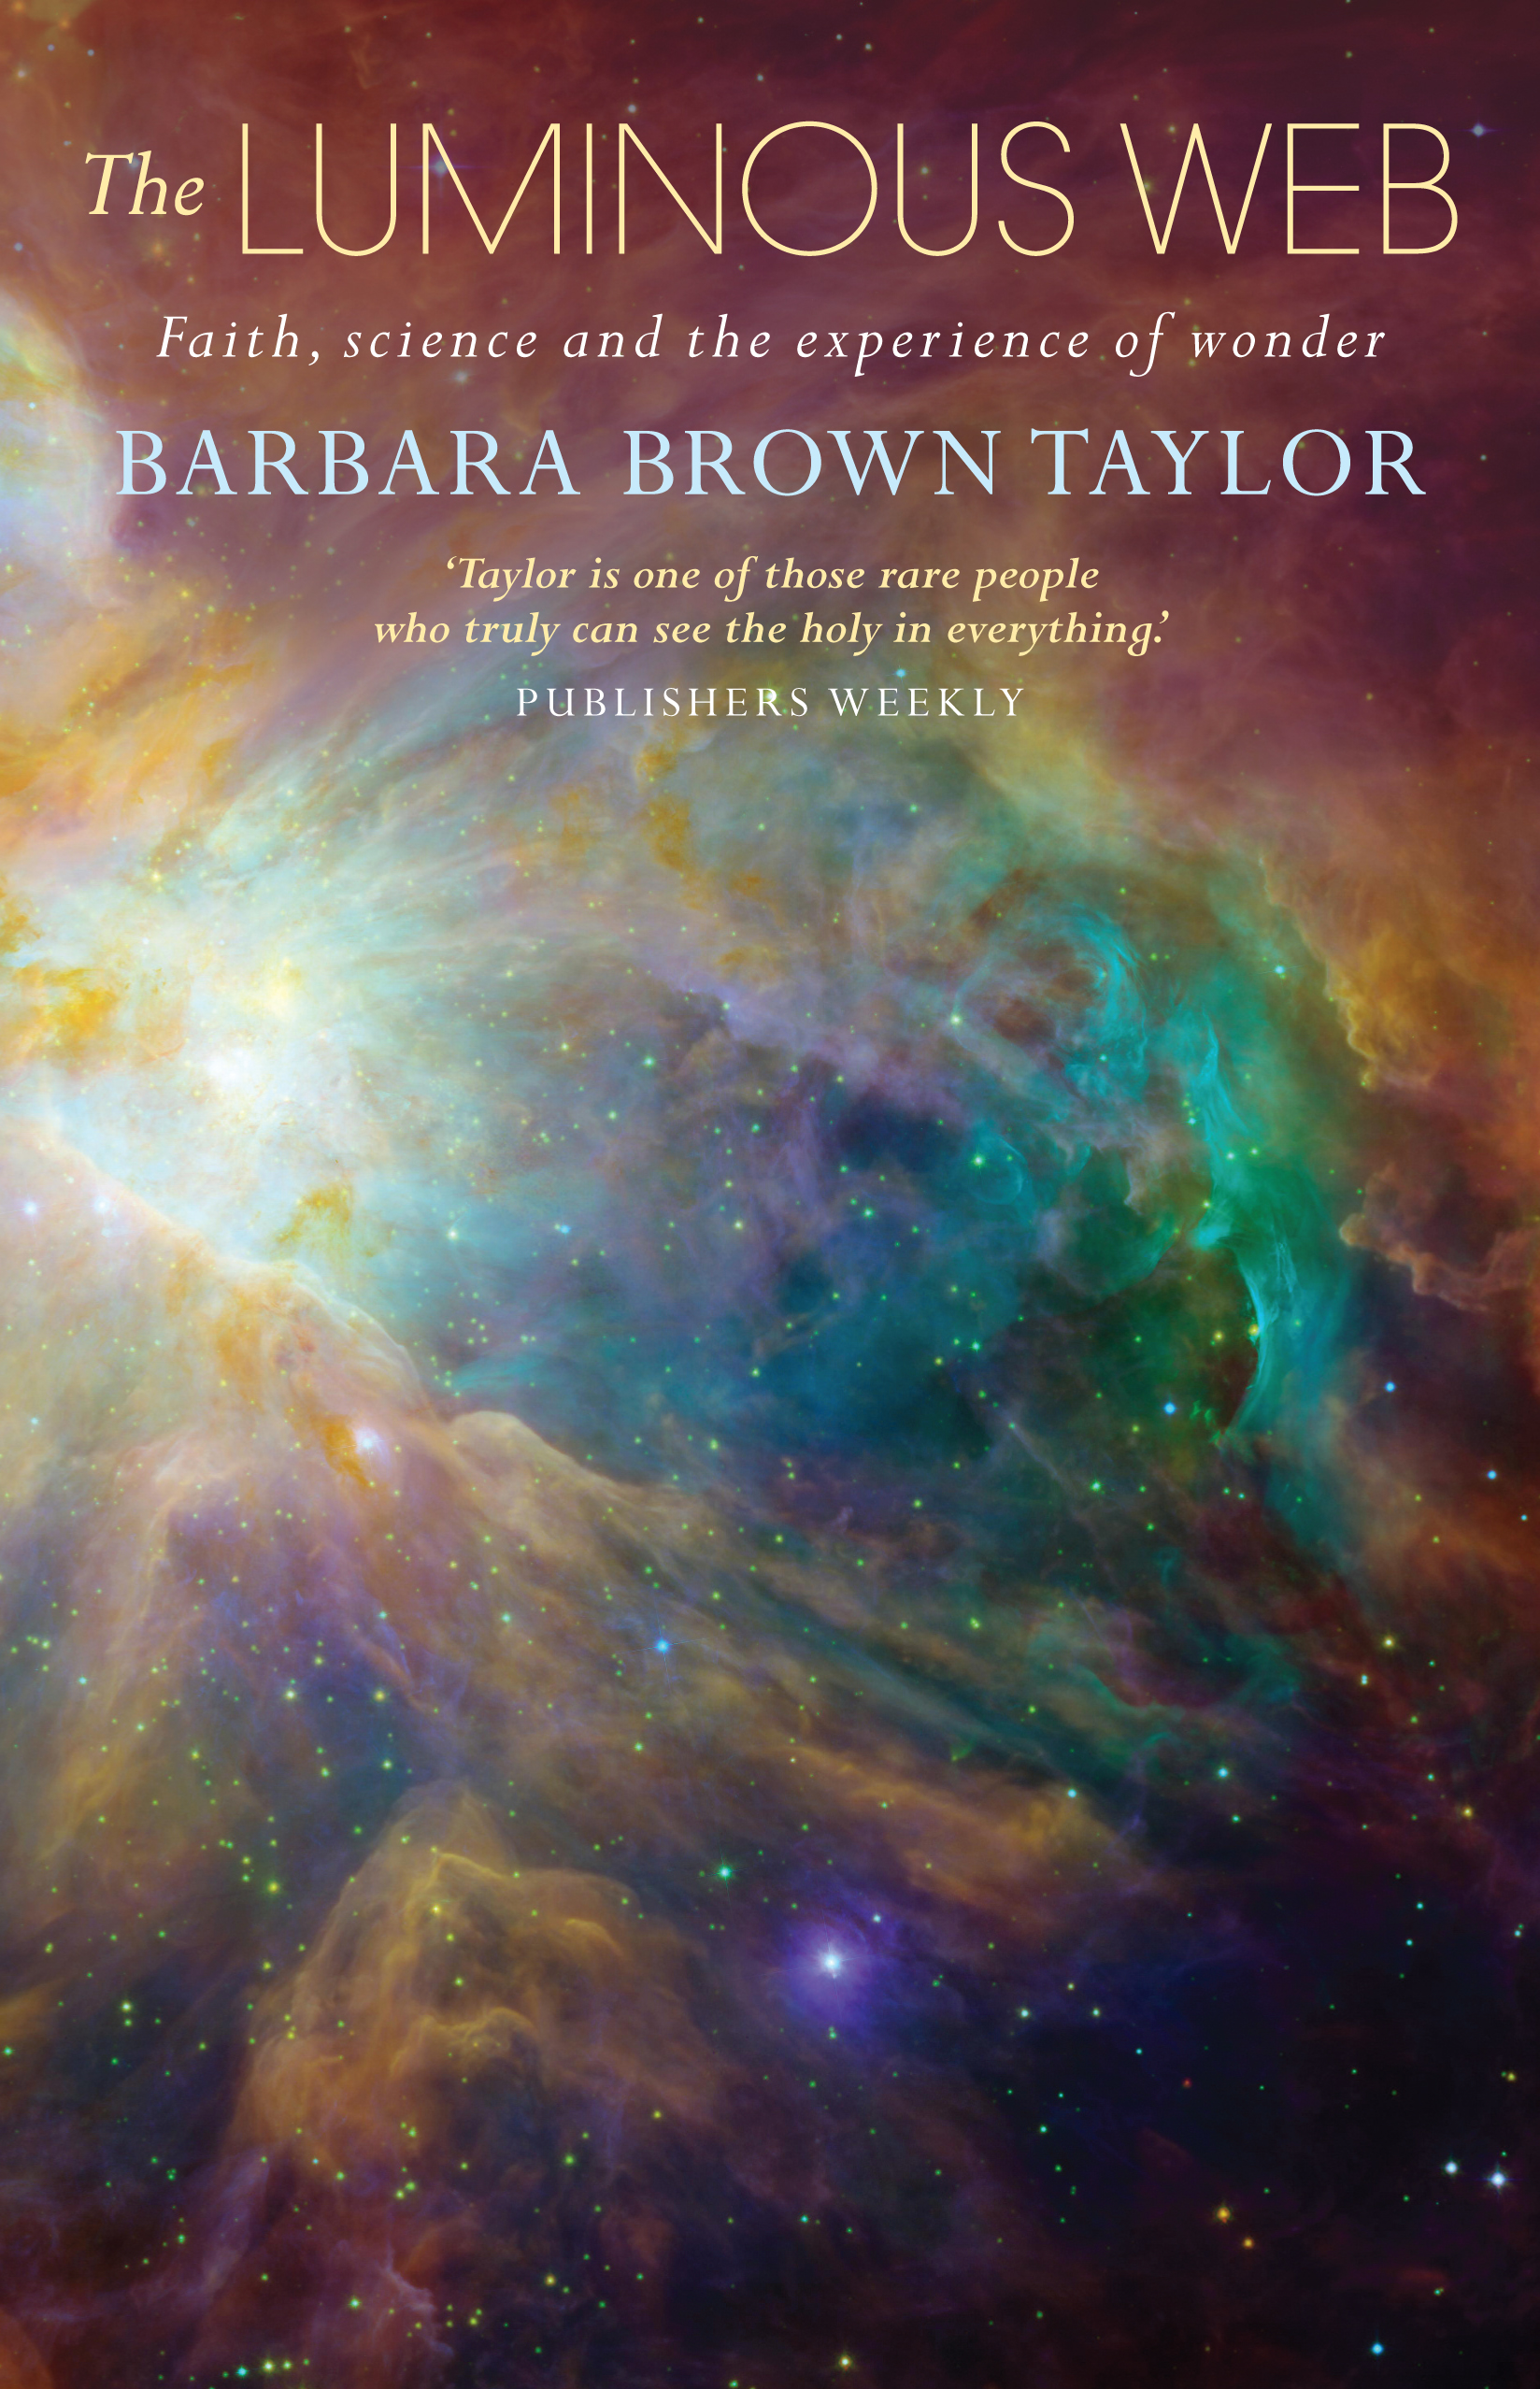 essay luminous religion science web The luminous web: essays on science and religion by barbara brown taylor in these essays on the dialogue between science and christian faith, barbara brown taylor.